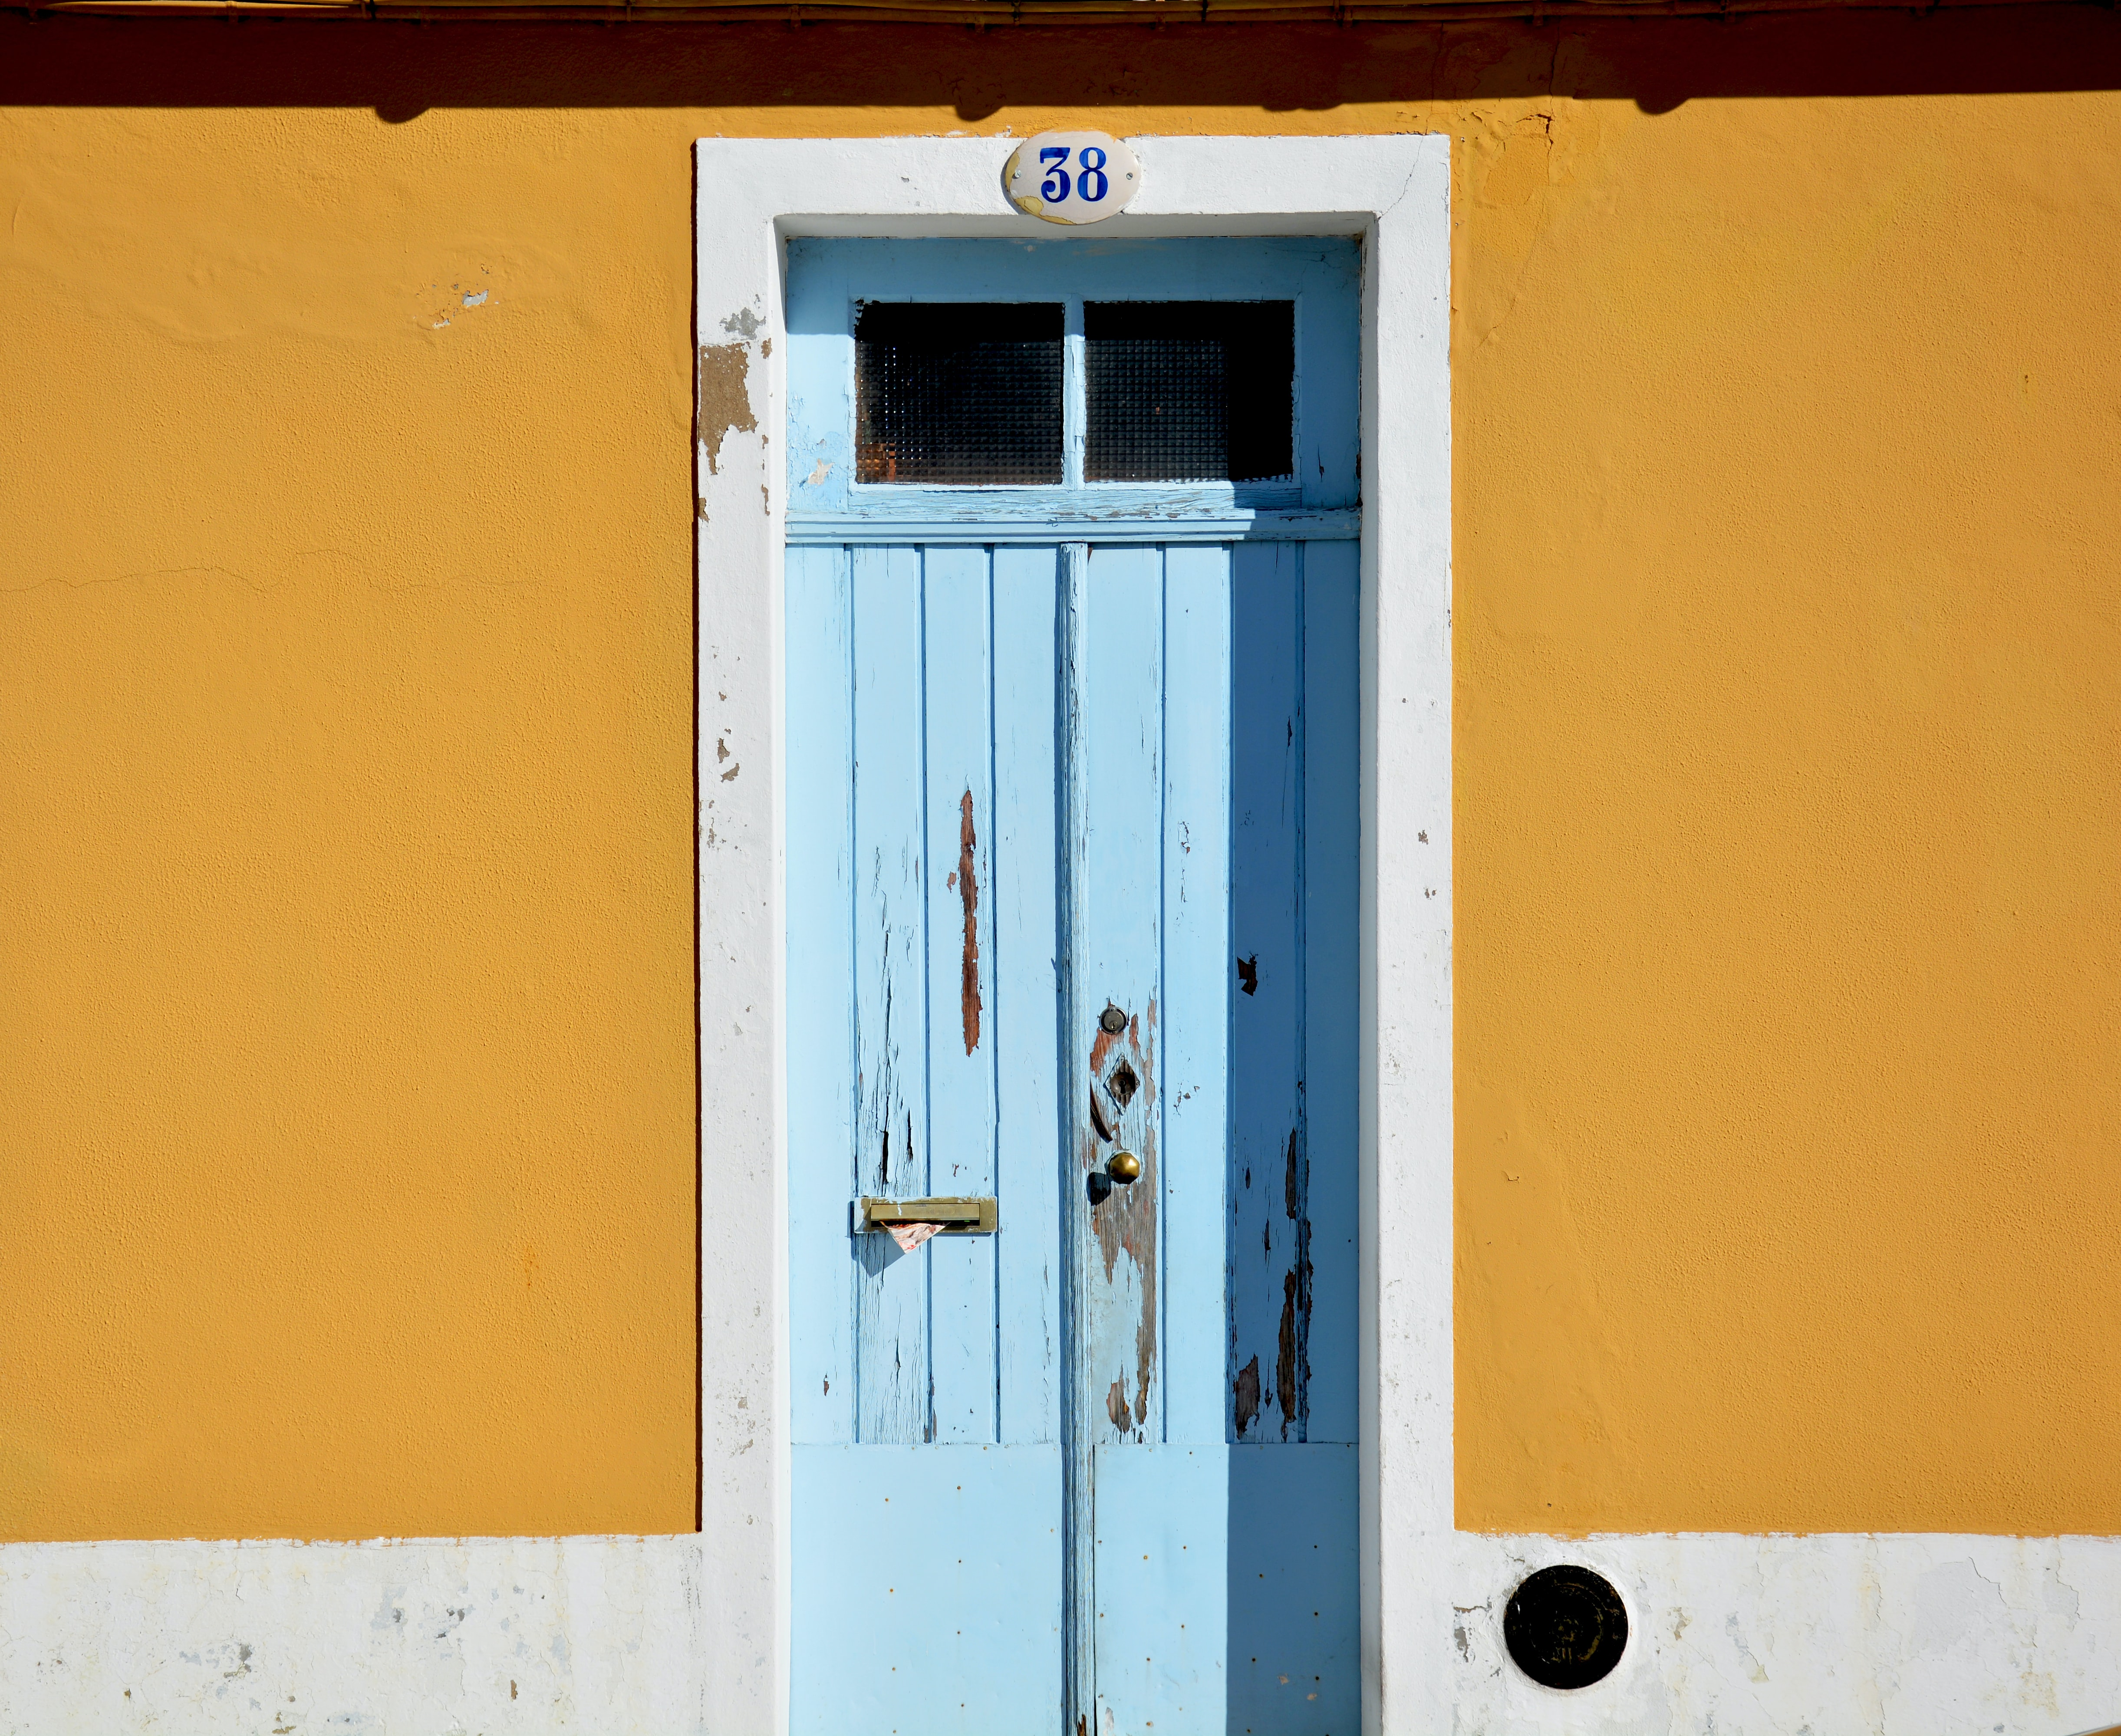 Old wooden door with chipped blue paint with a brass doorknob and the number 38 at the top surrounded by mustard yellow walls